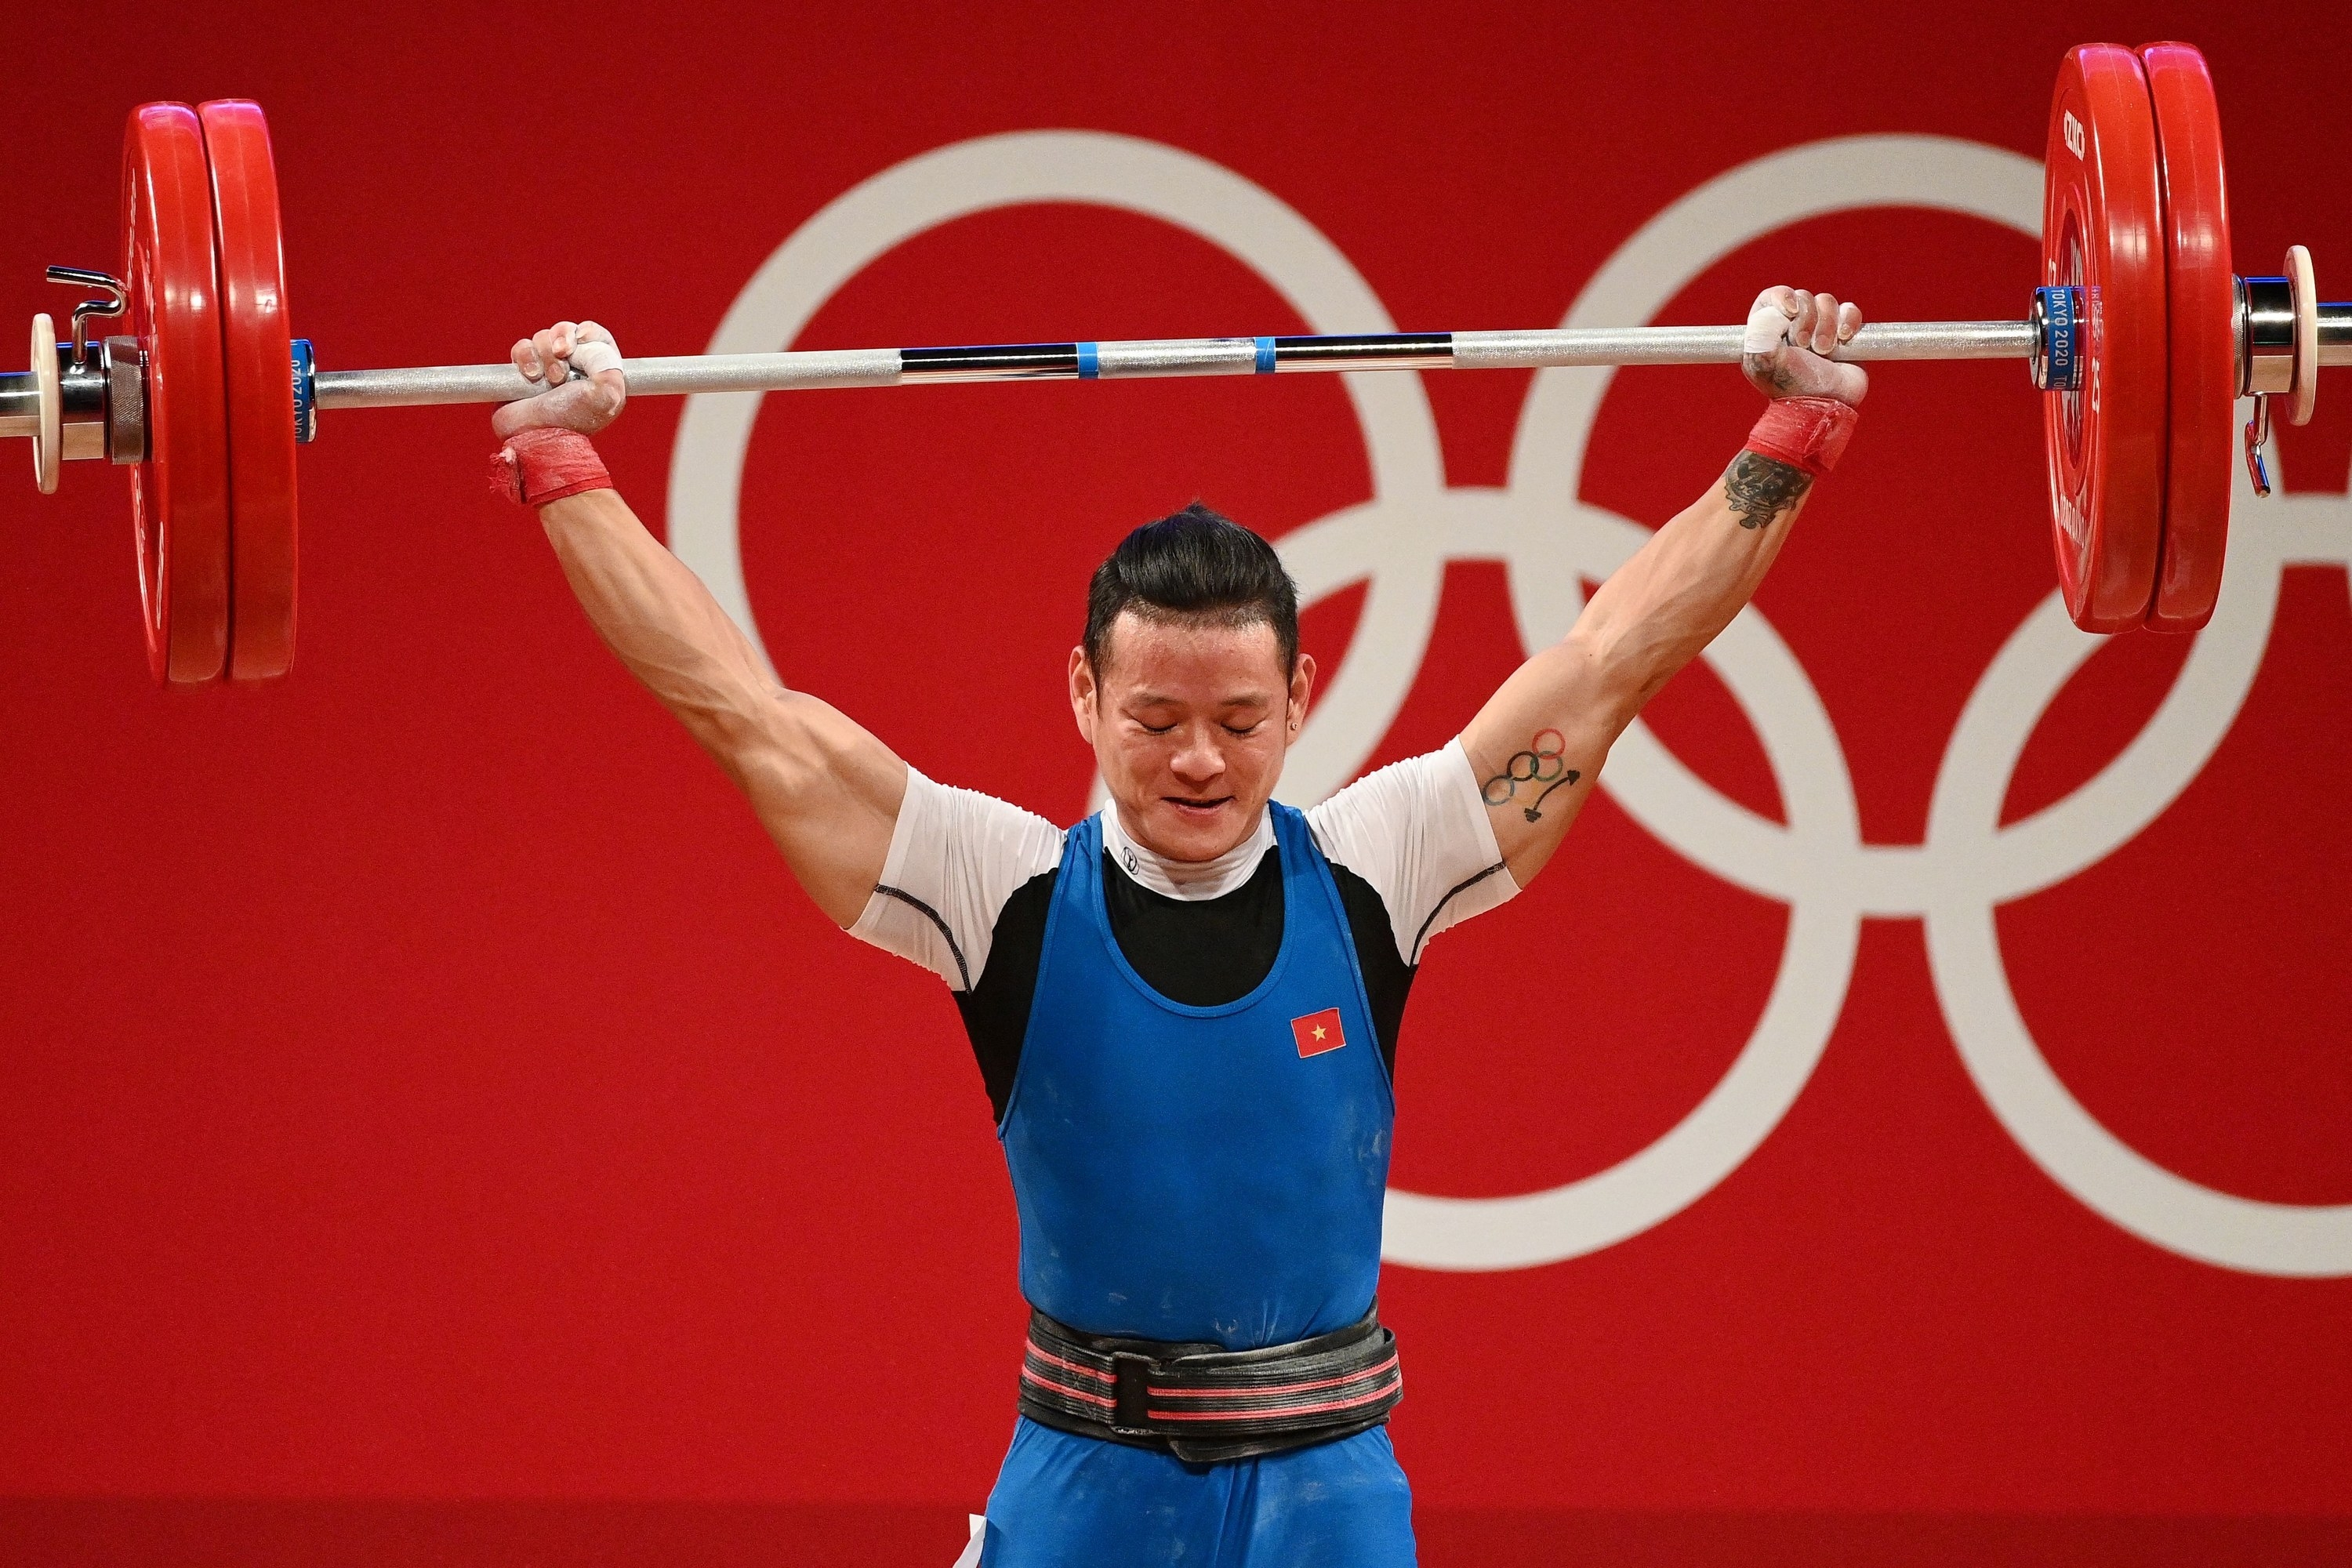 Olympic weightlifter holds barbell overhead in competition.